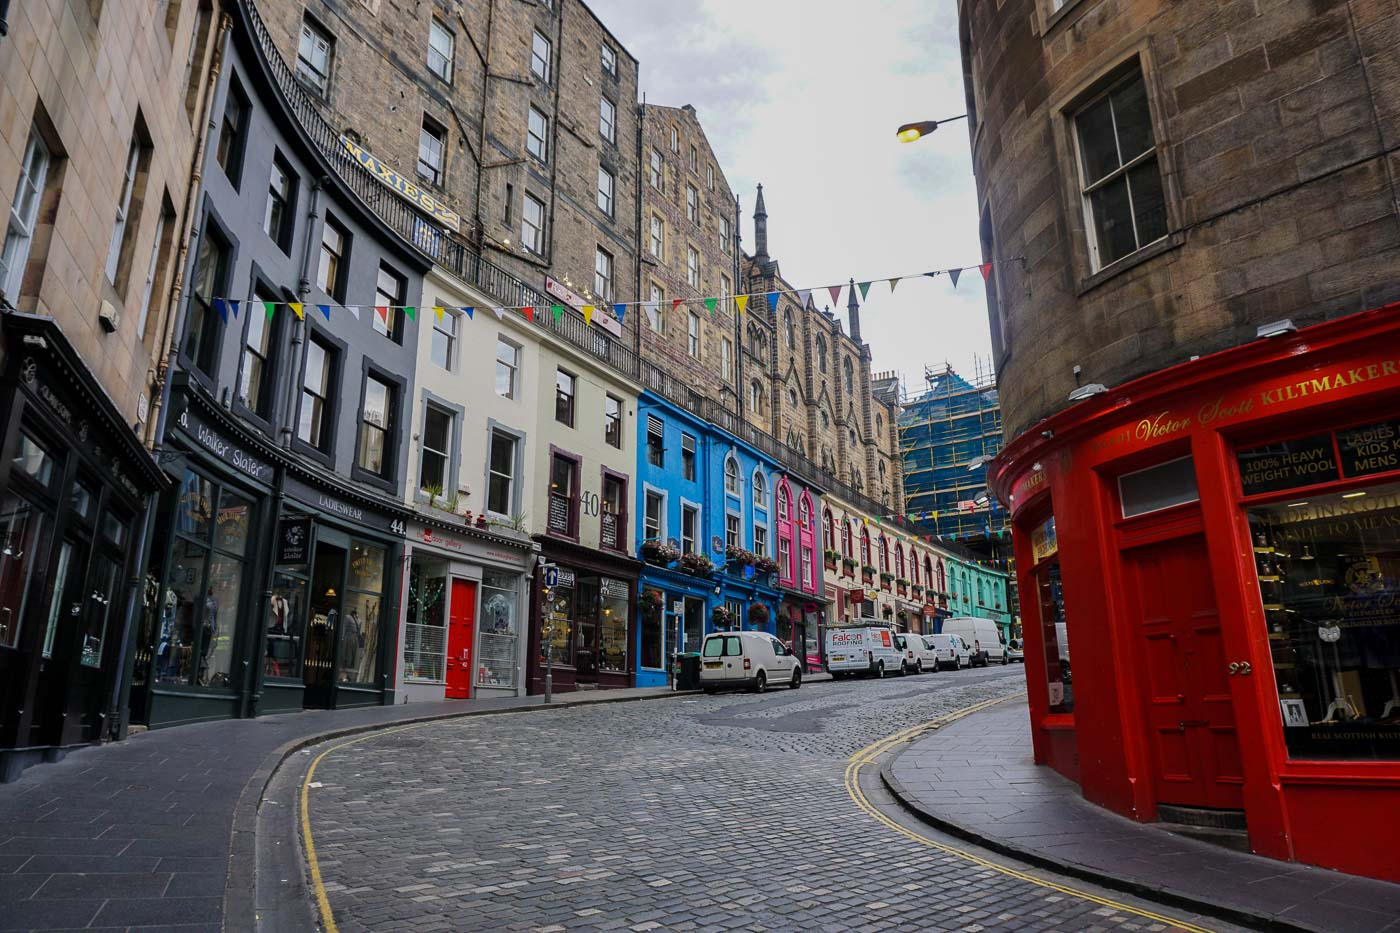 Curving street with colourful shop fronts